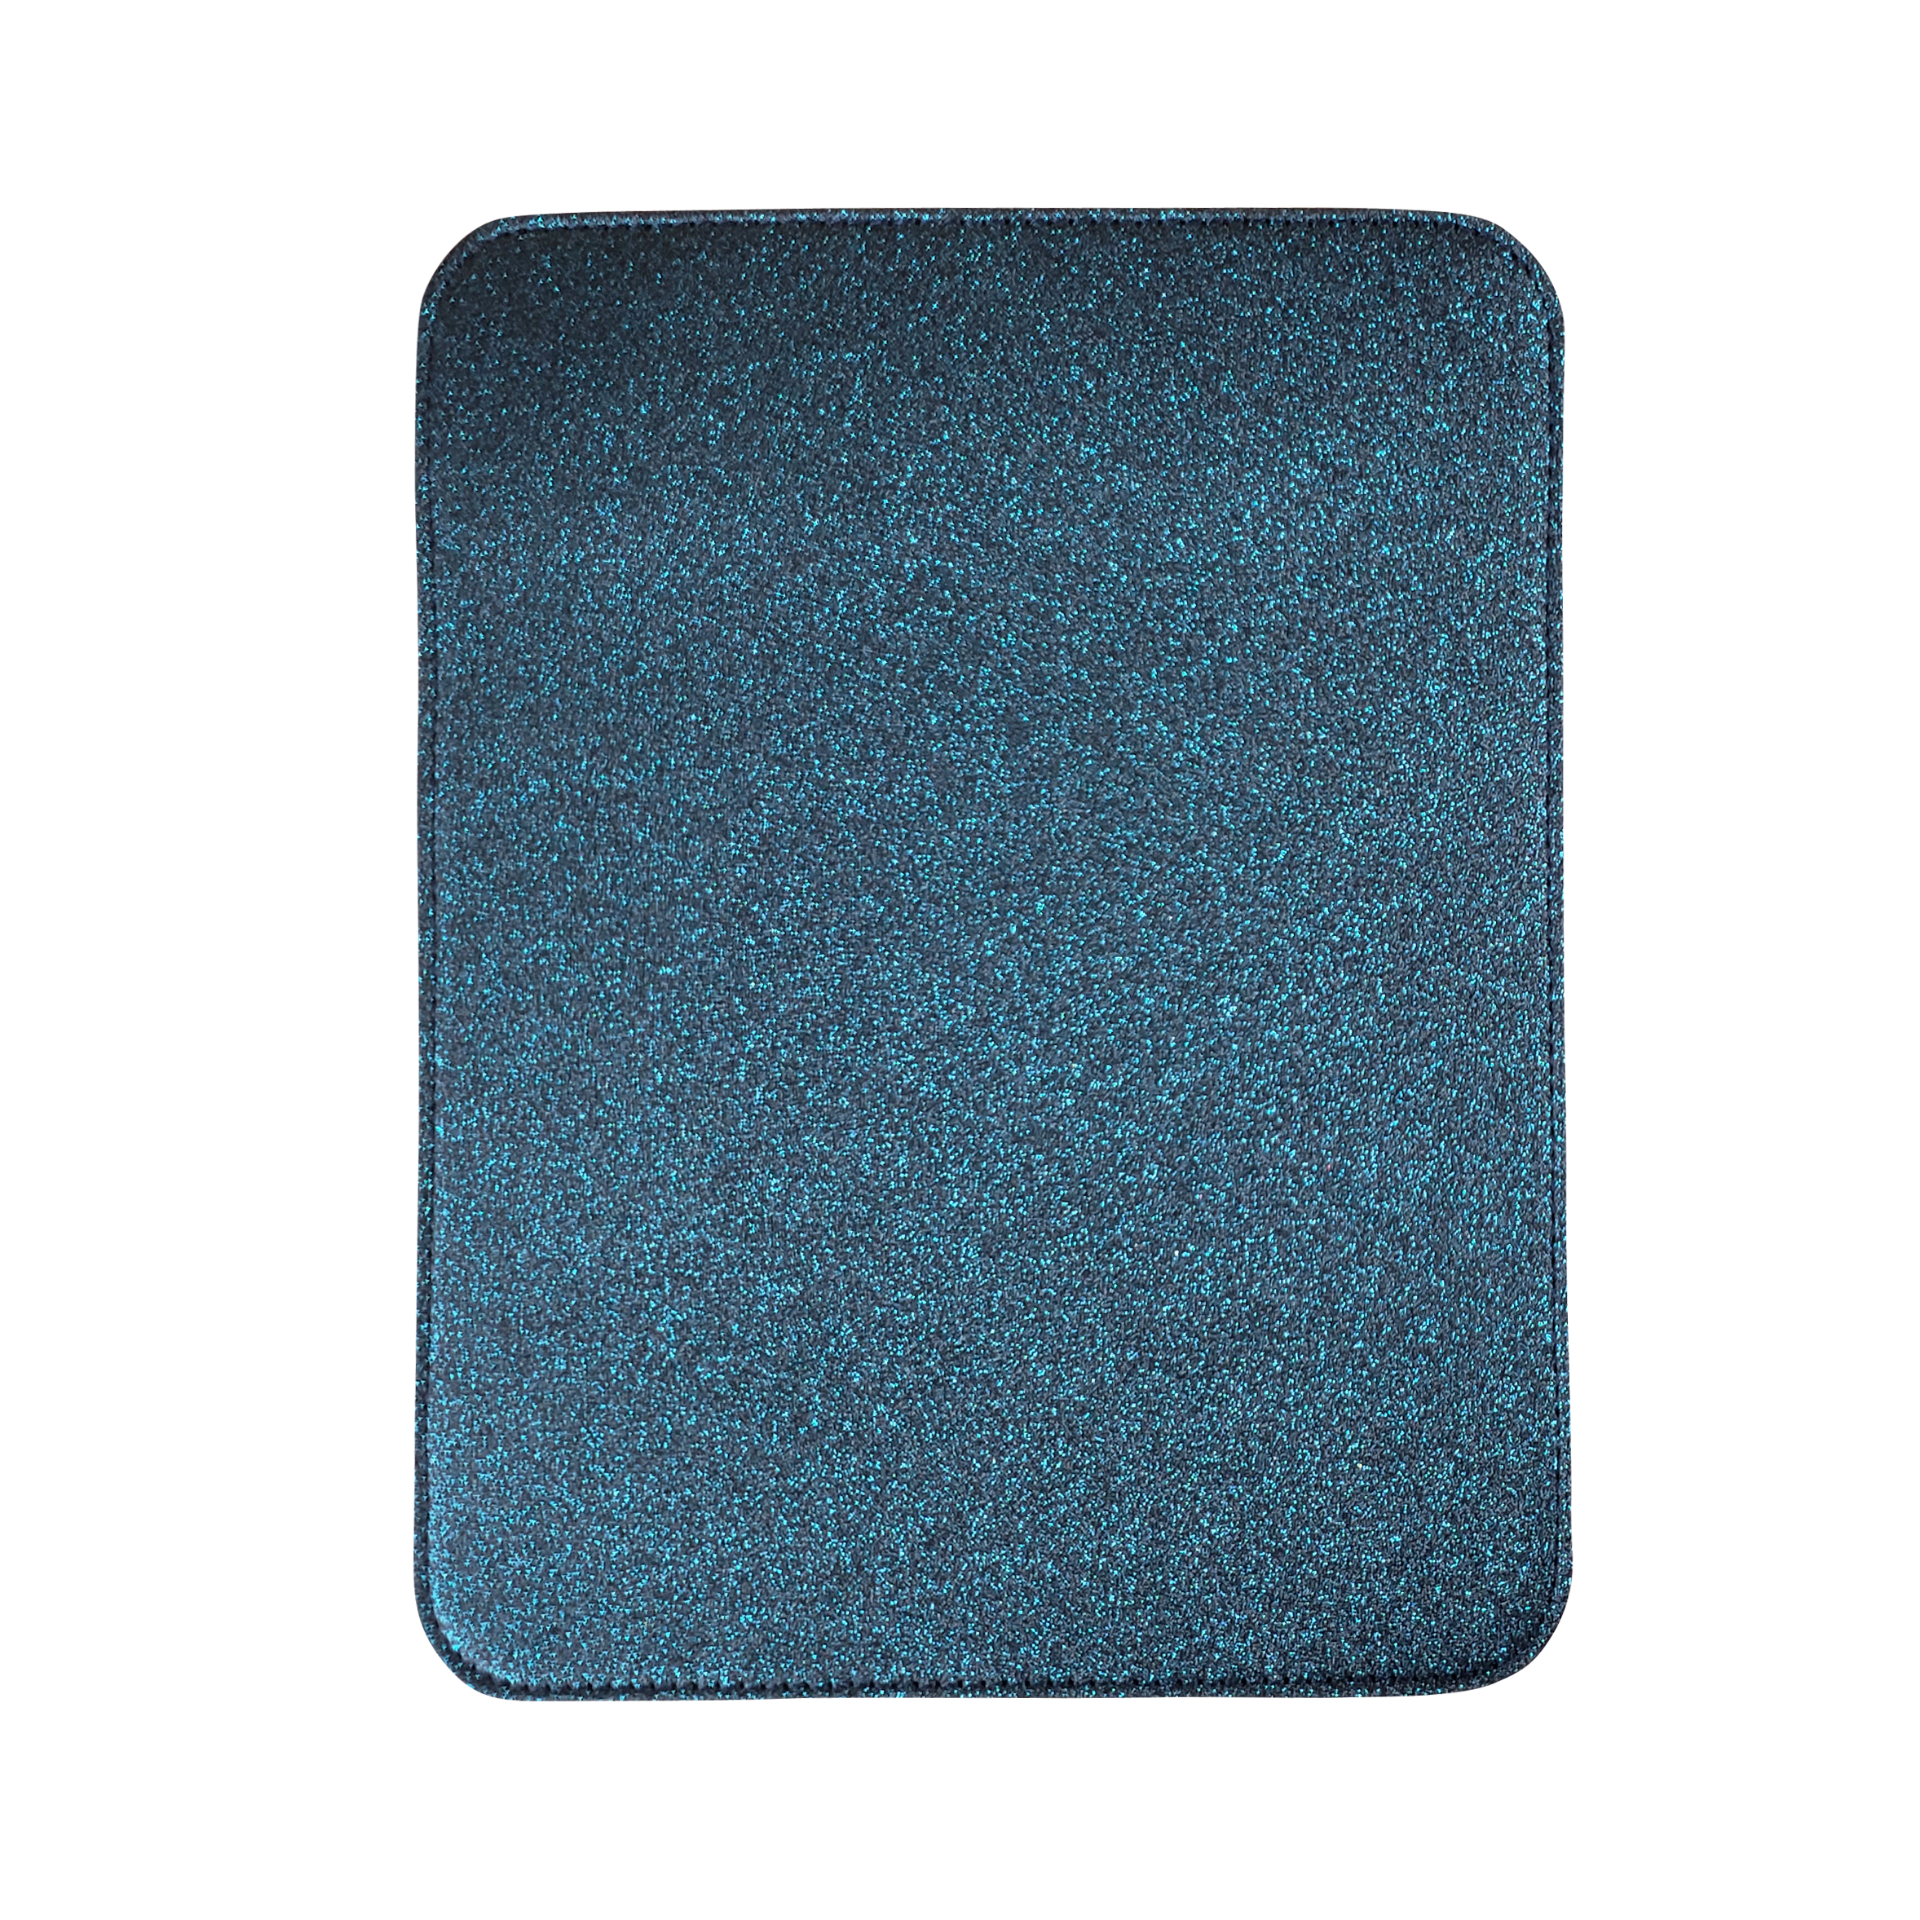 Midnight blue glitter flap for the Signature Evolution Smart Bag